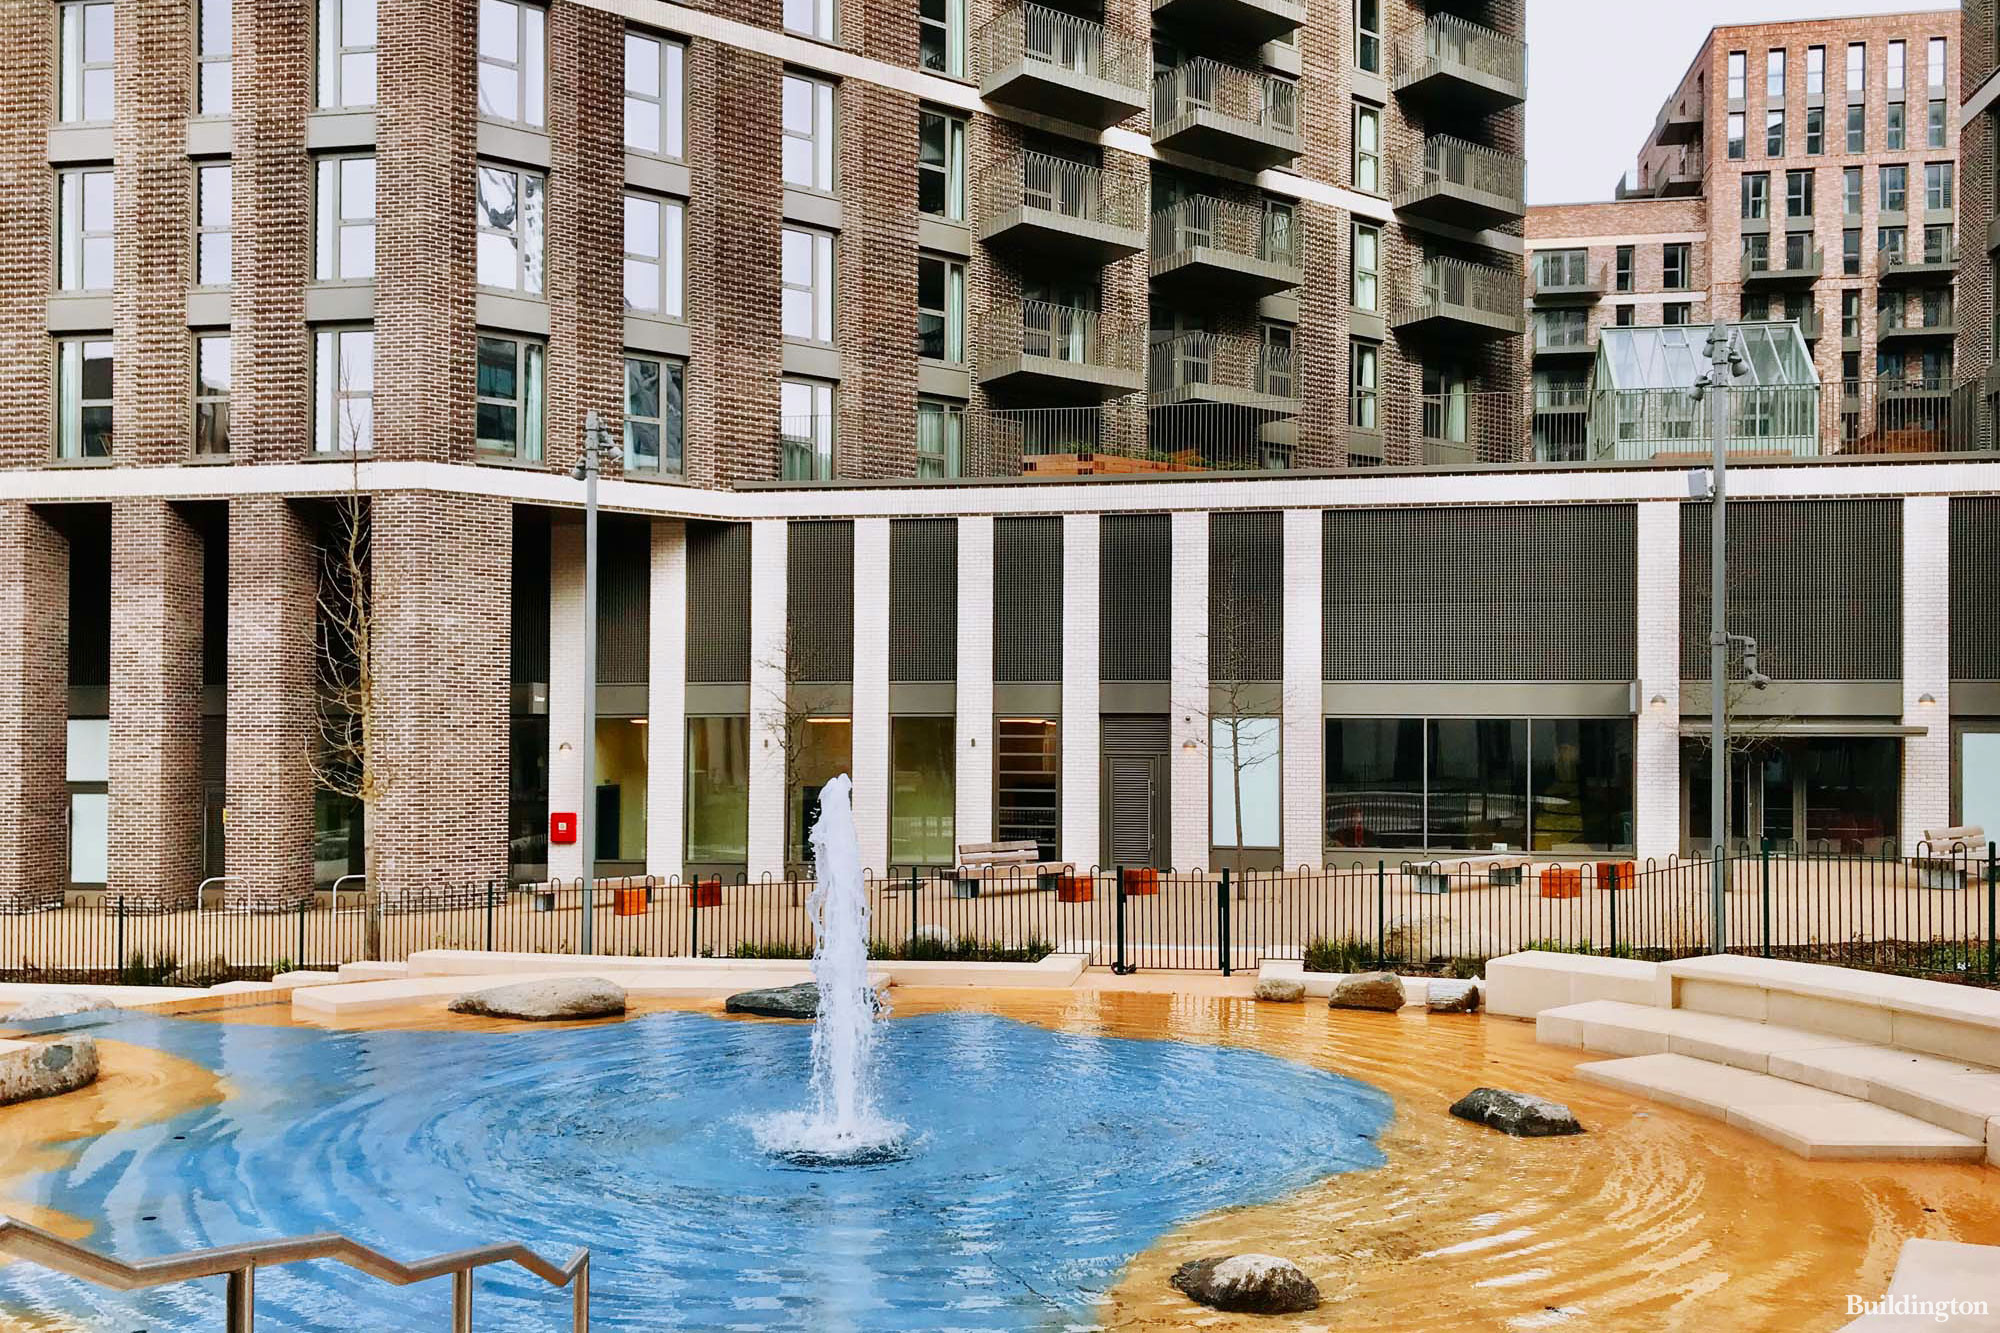 The pool and fountain at Canada Gardens development in Wembley Park.